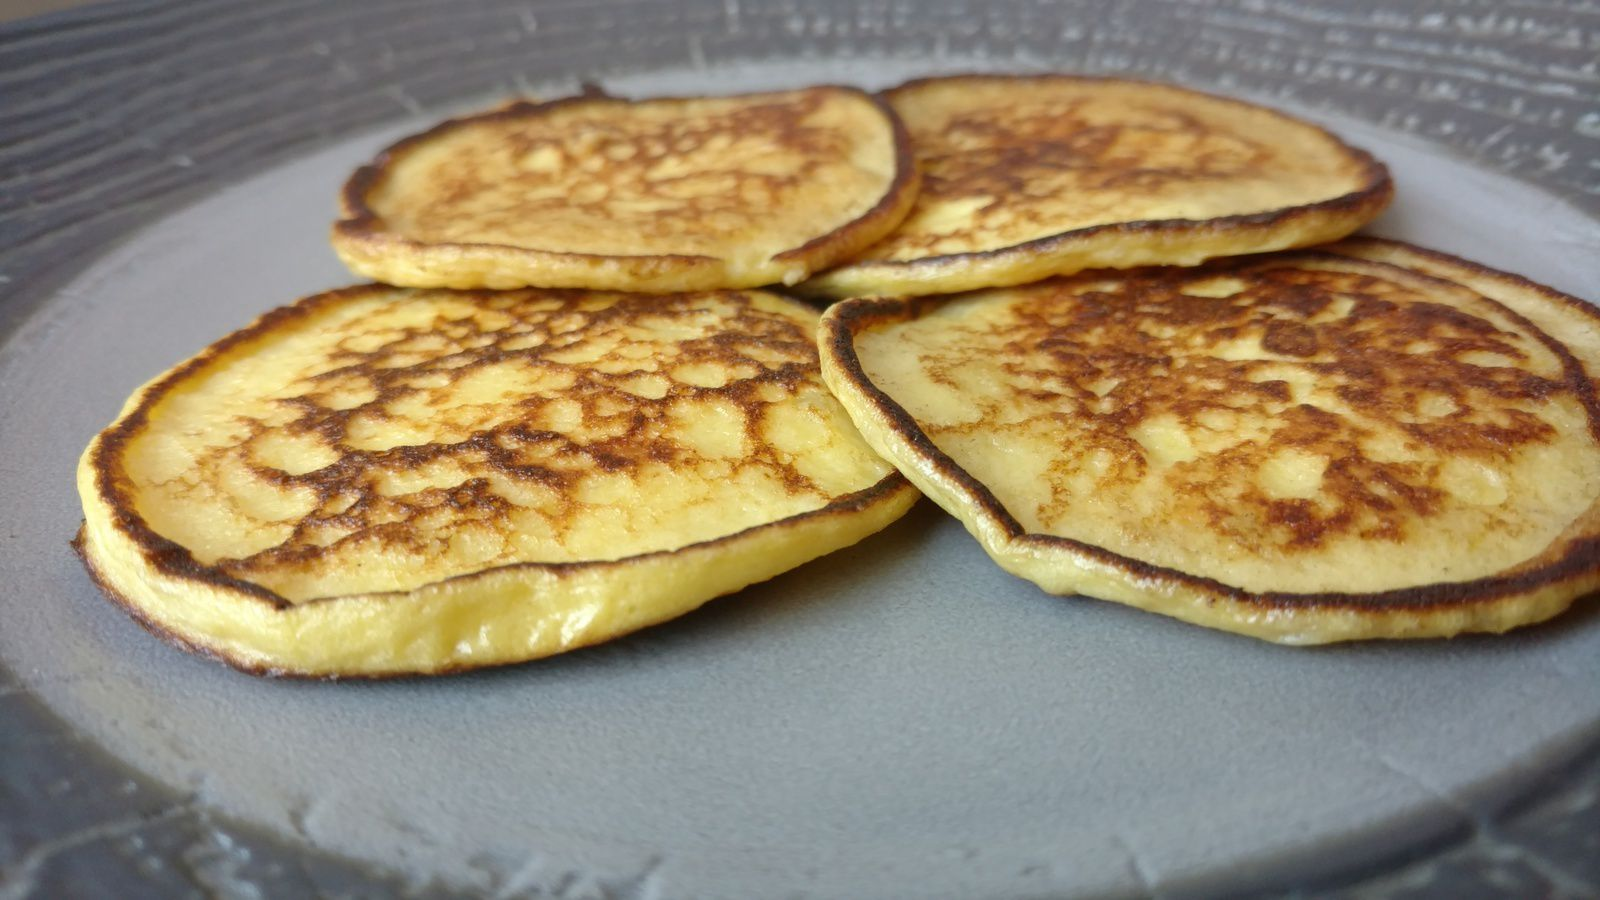 Cr pes vonassiennes recette de ma grand m re c secrets gourmands - Crepes aux pommes grand mere ...